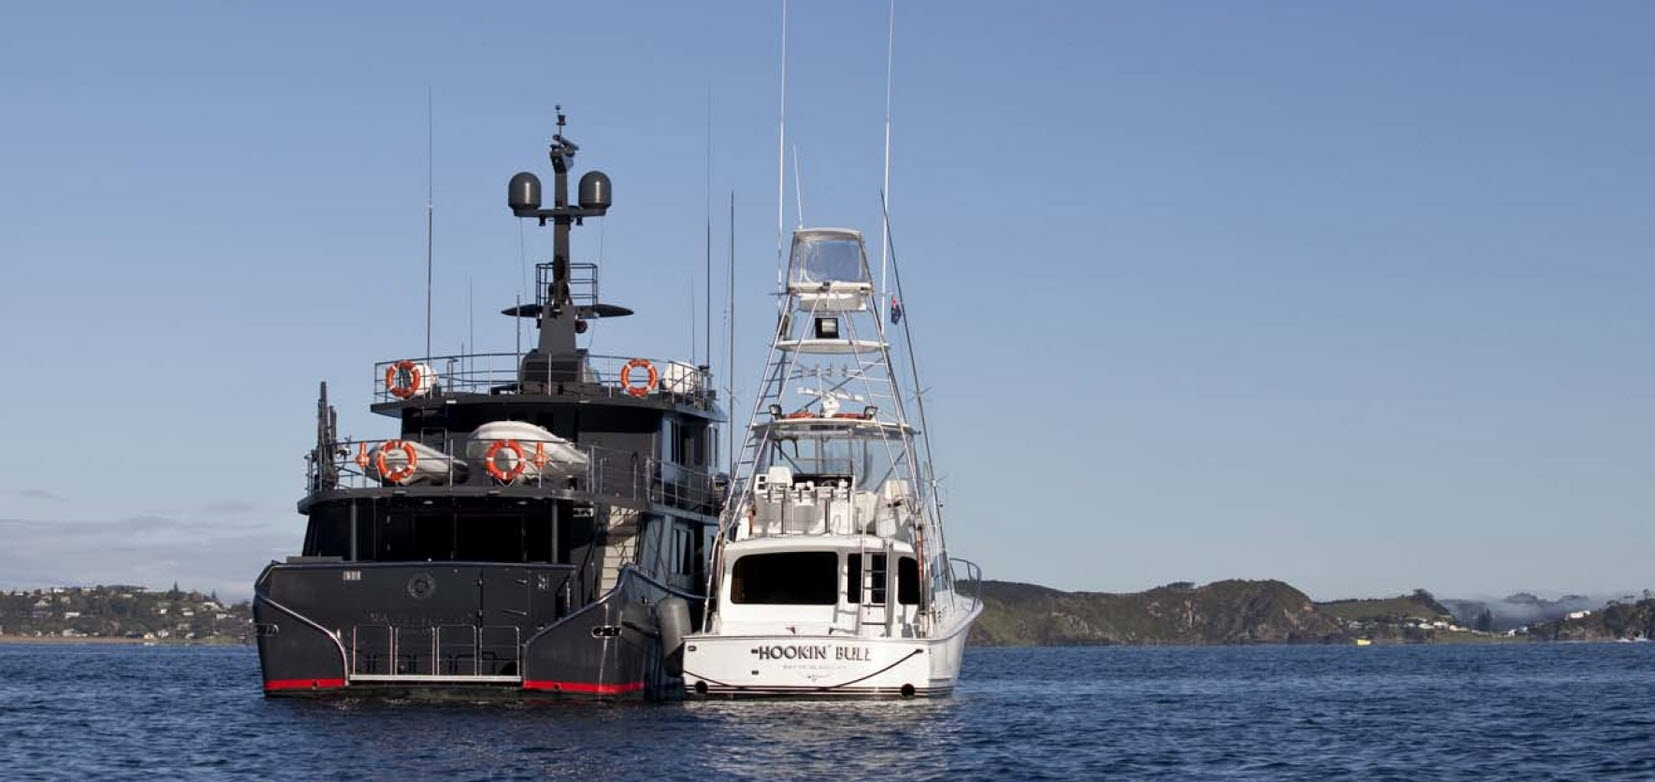 Pacific HQ Yacht and Hookin Bull sportfish